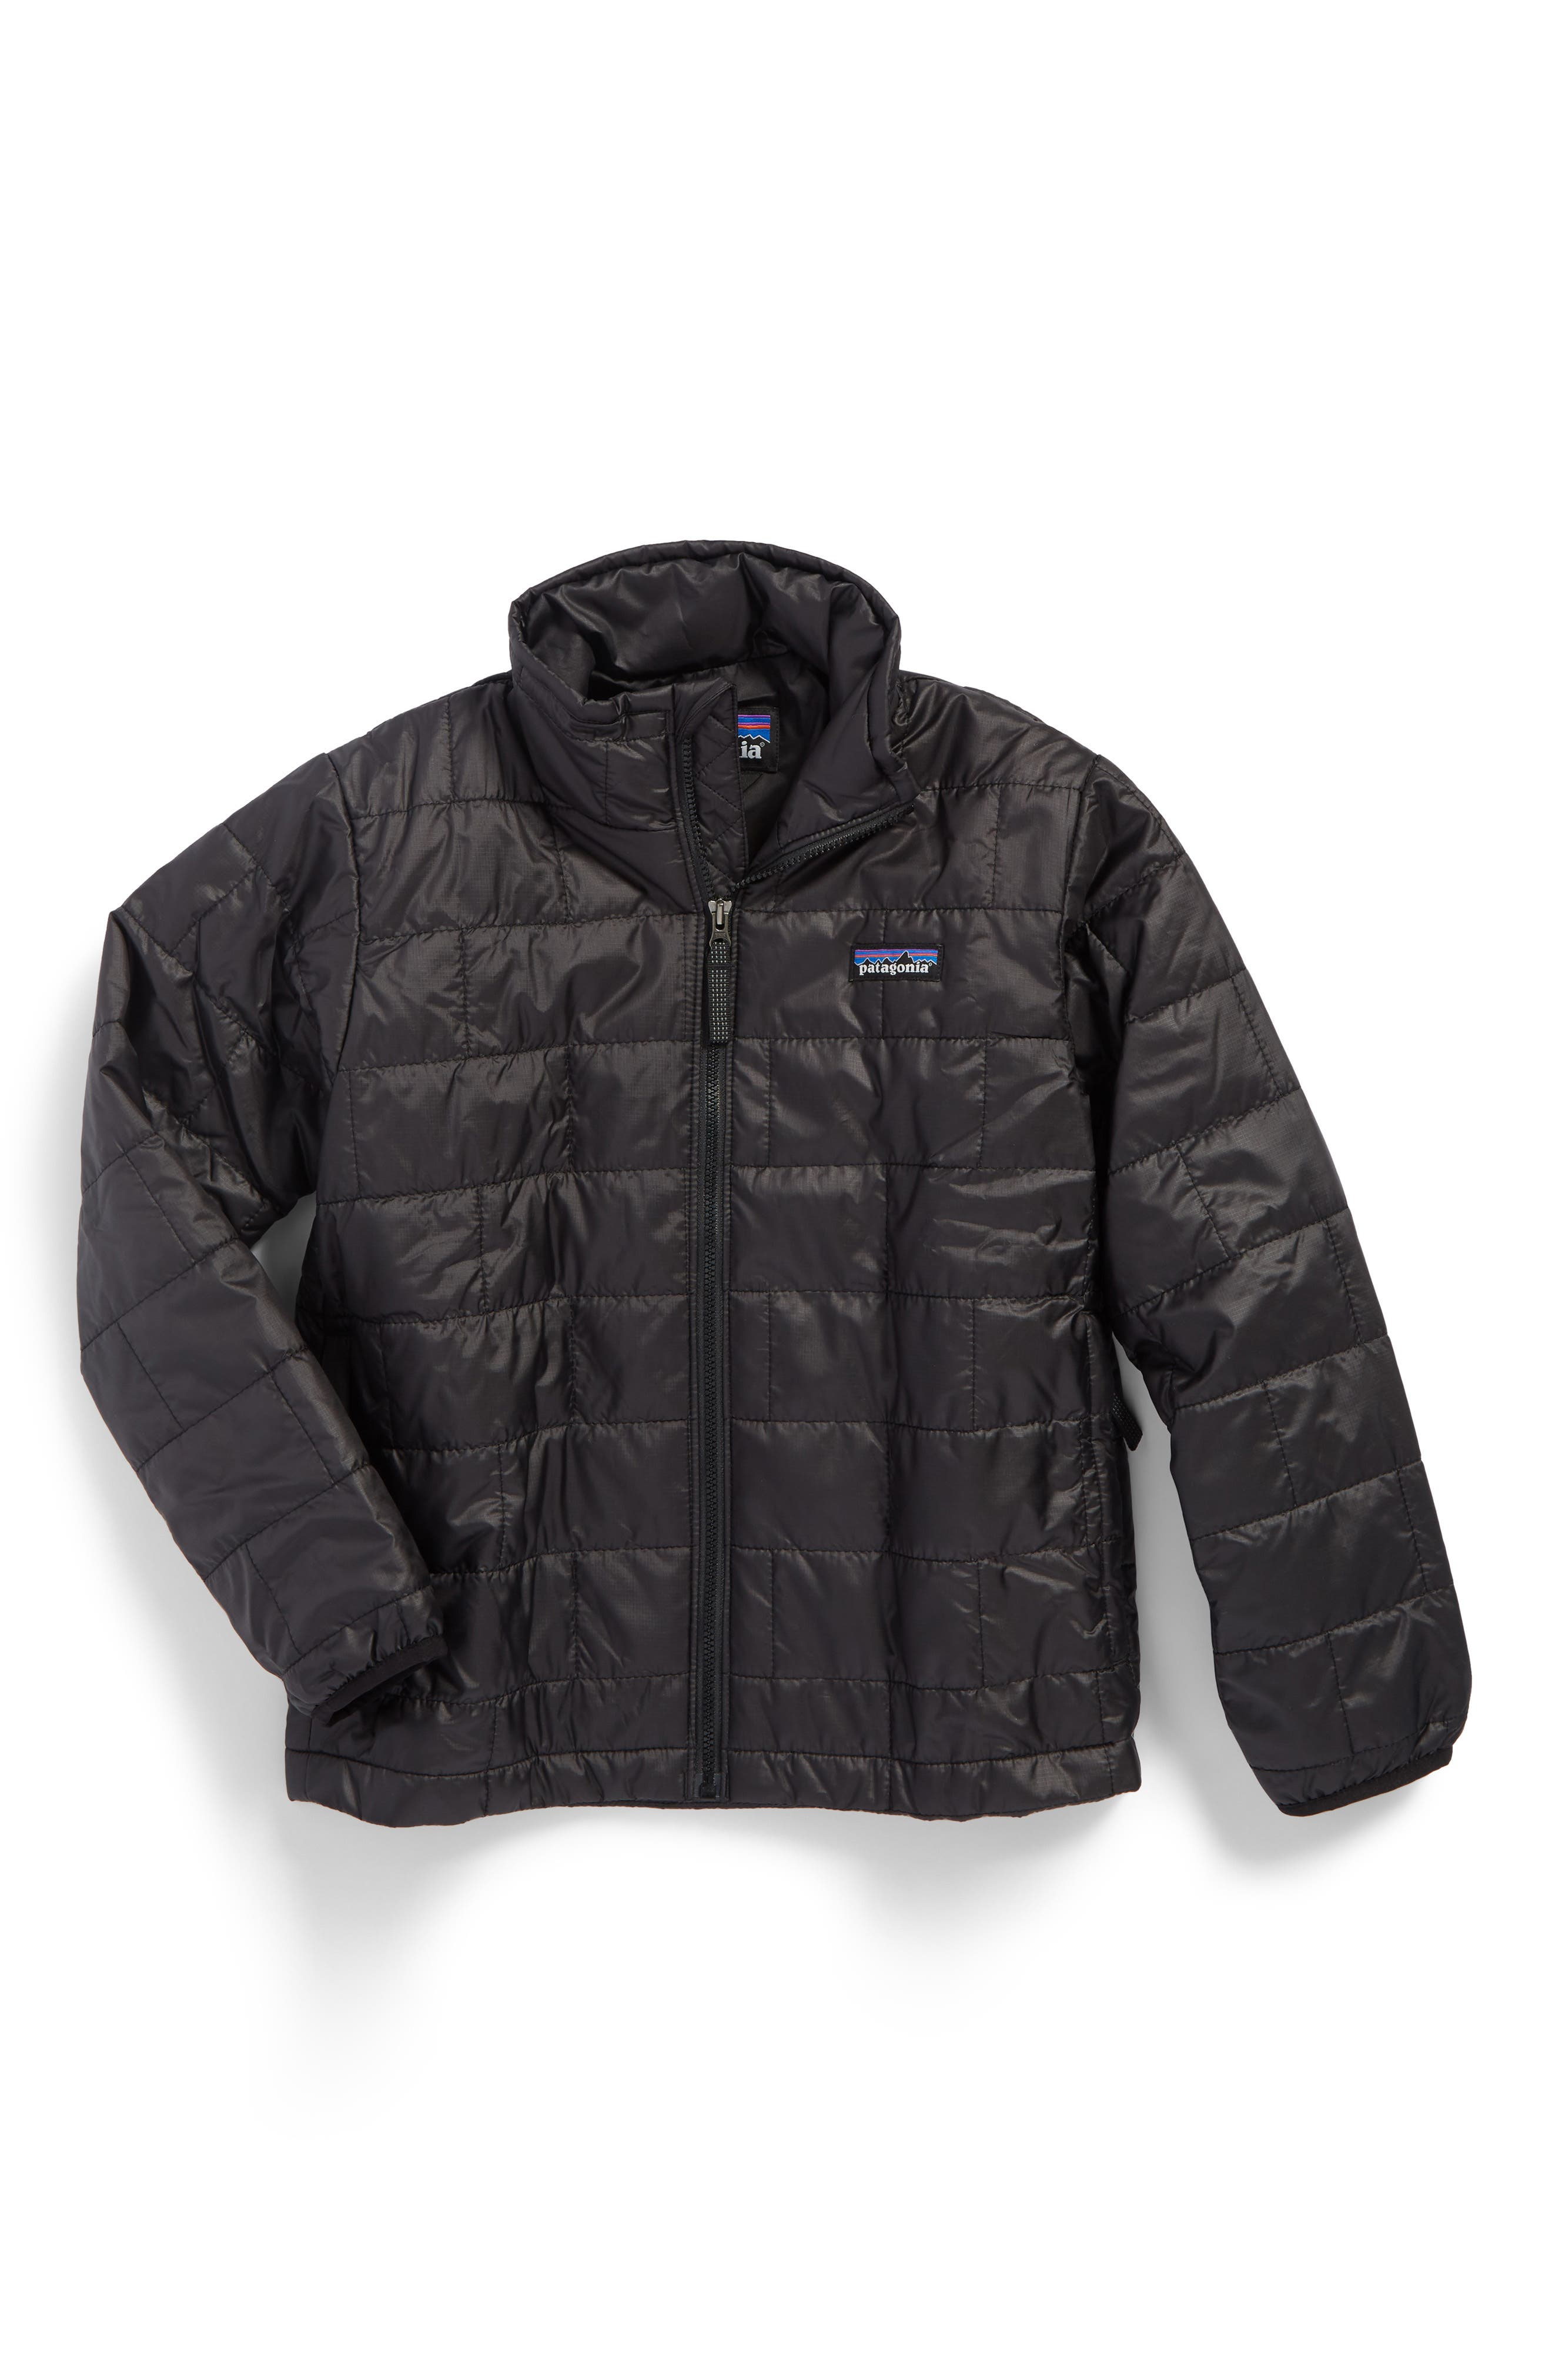 Nano Puff<sup>®</sup> Water Repellent PrimaLoft<sup>®</sup> Insulated Jacket,                             Main thumbnail 1, color,                             BLACK